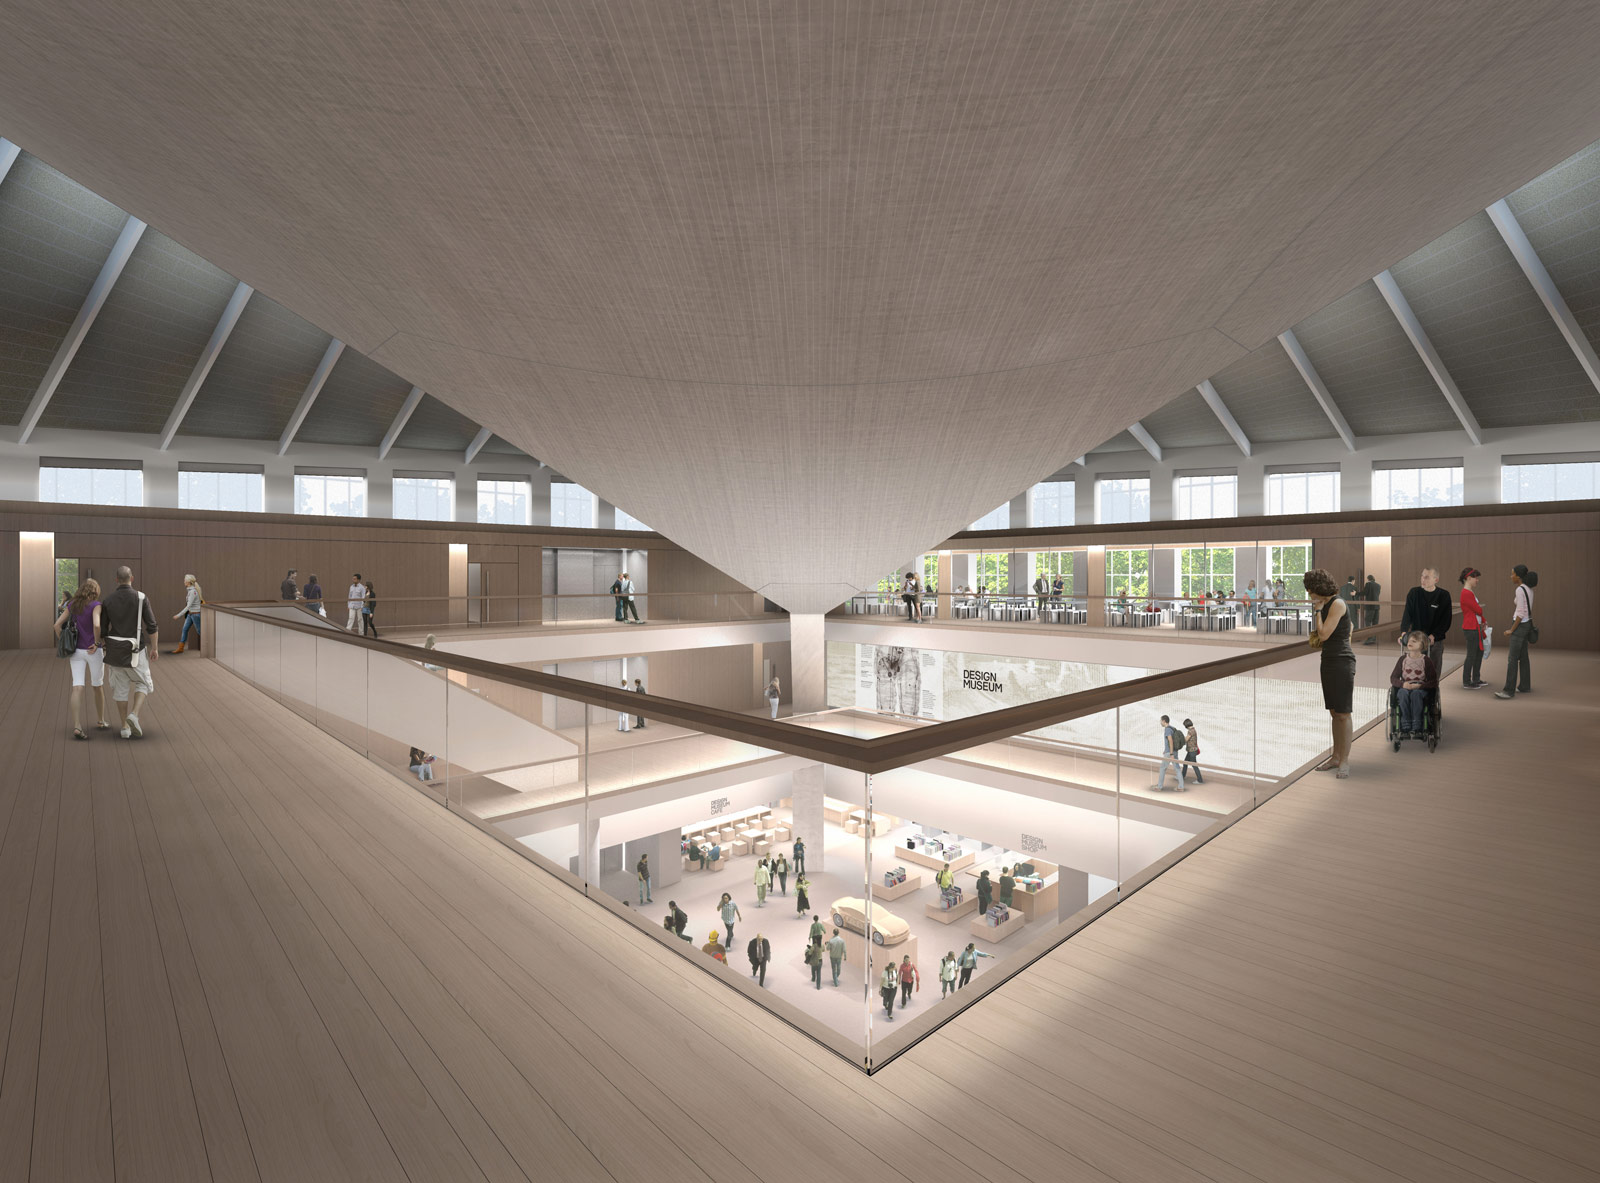 A render of the atrium at the new Kensington location for the Design Museum. Image by Alex Morris Visualisation